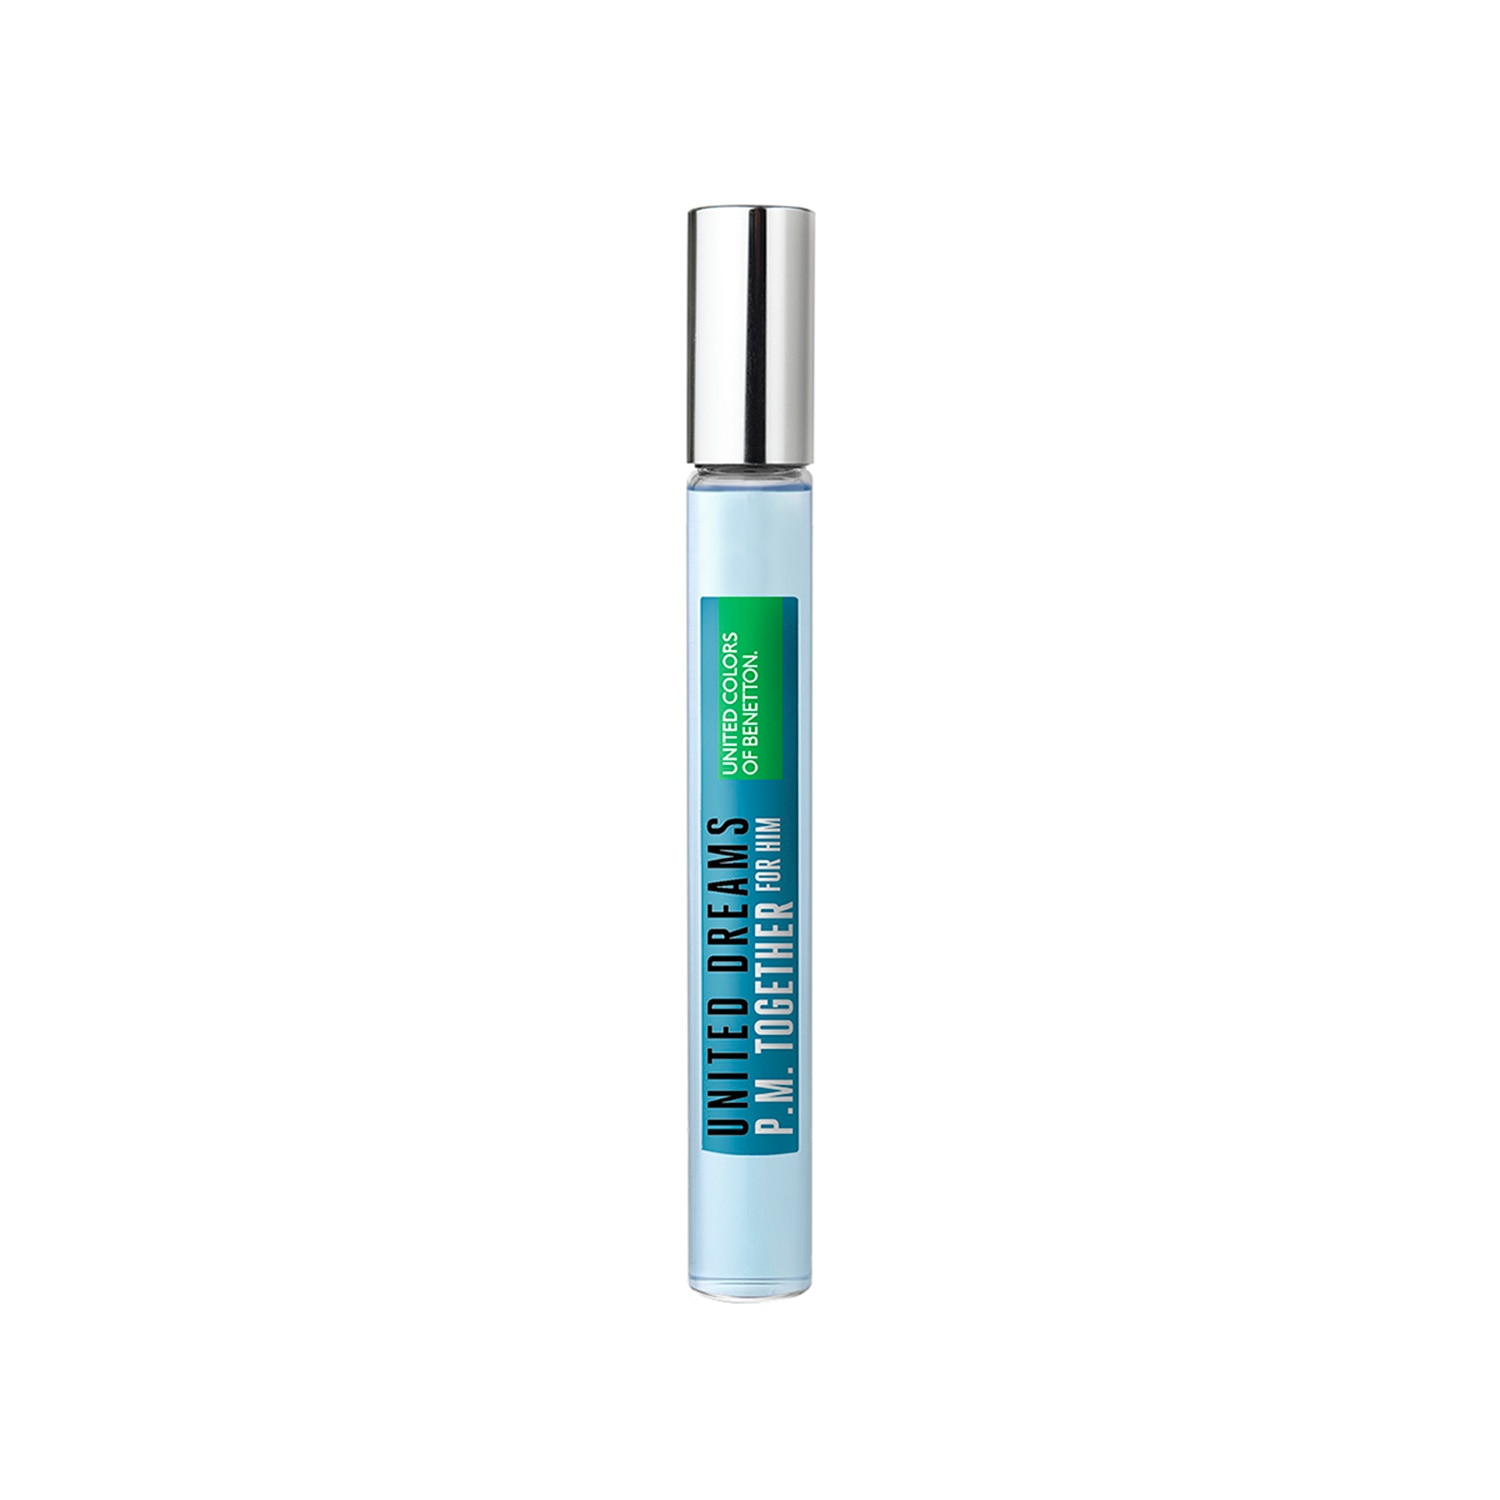 BENETTON, TOGETHER FOR HIM, EDT 100ML + BOOSTERS 2X10ML